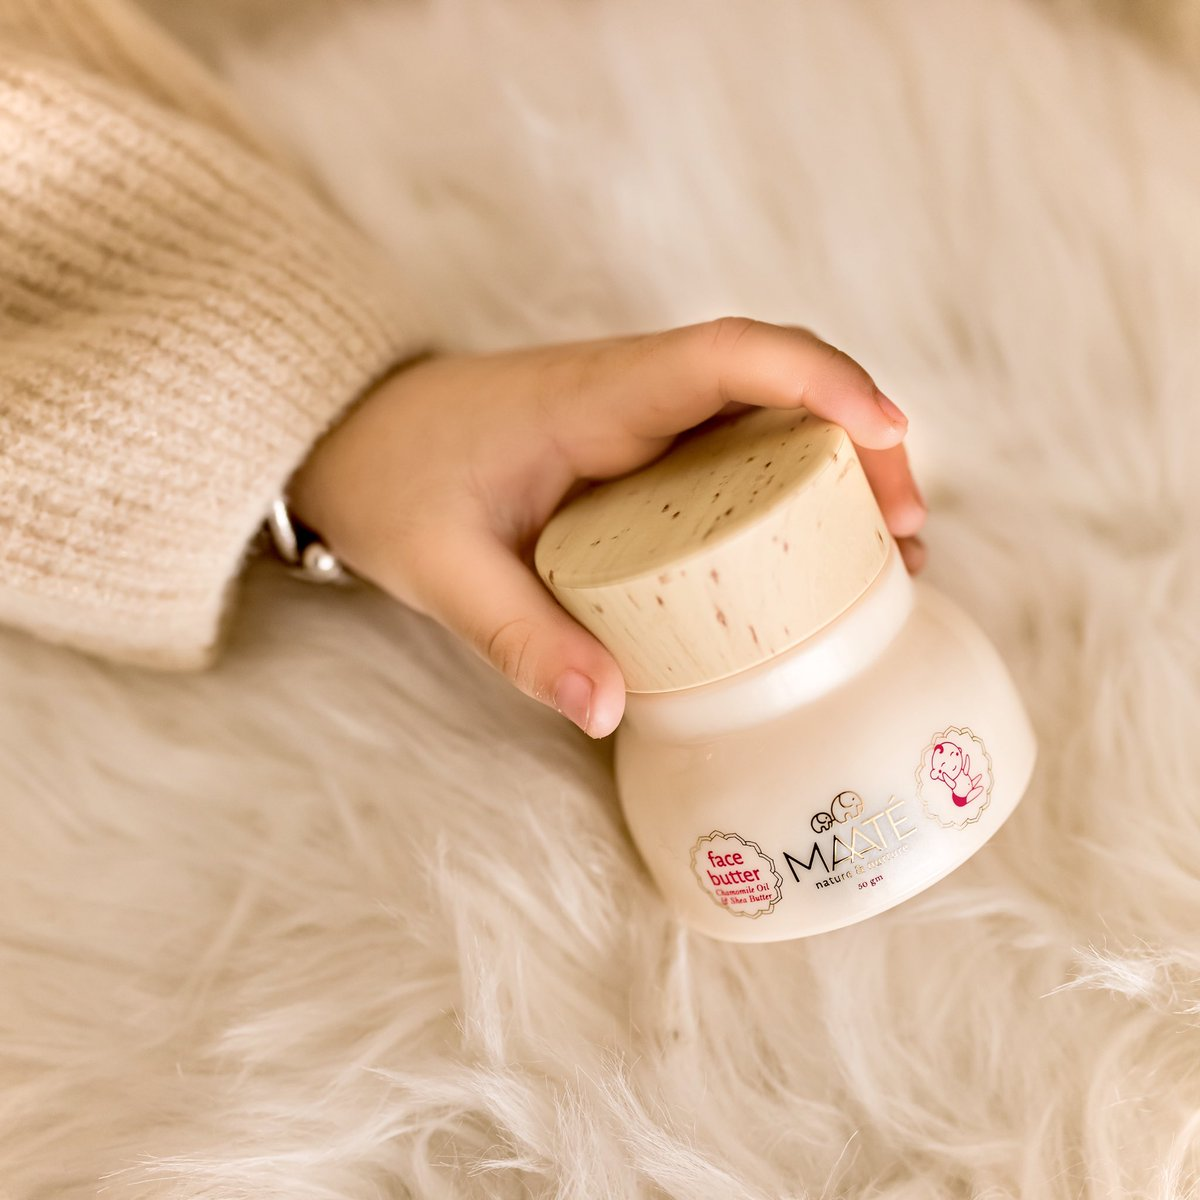 TALES OF WELLNESS - Winter wellness for babies is all about nourishing care & conforming rituals. Our tiny tots deserve extra care for their extremely delicate skin during winters. A deeply moisturising skincare routine is a must to include to keep your baby's skin well hydrated.